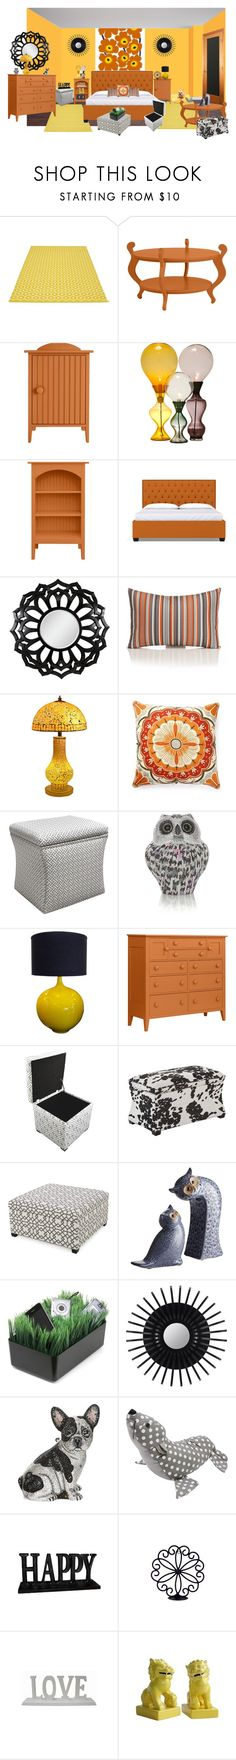 """happy"" by sterlingkitten on Polyvore featuring interior, interiors, interior design, home, home decor, interior decorating, Marimekko, Pappelina, Cooper Classics and Universal Lighting and Decor"